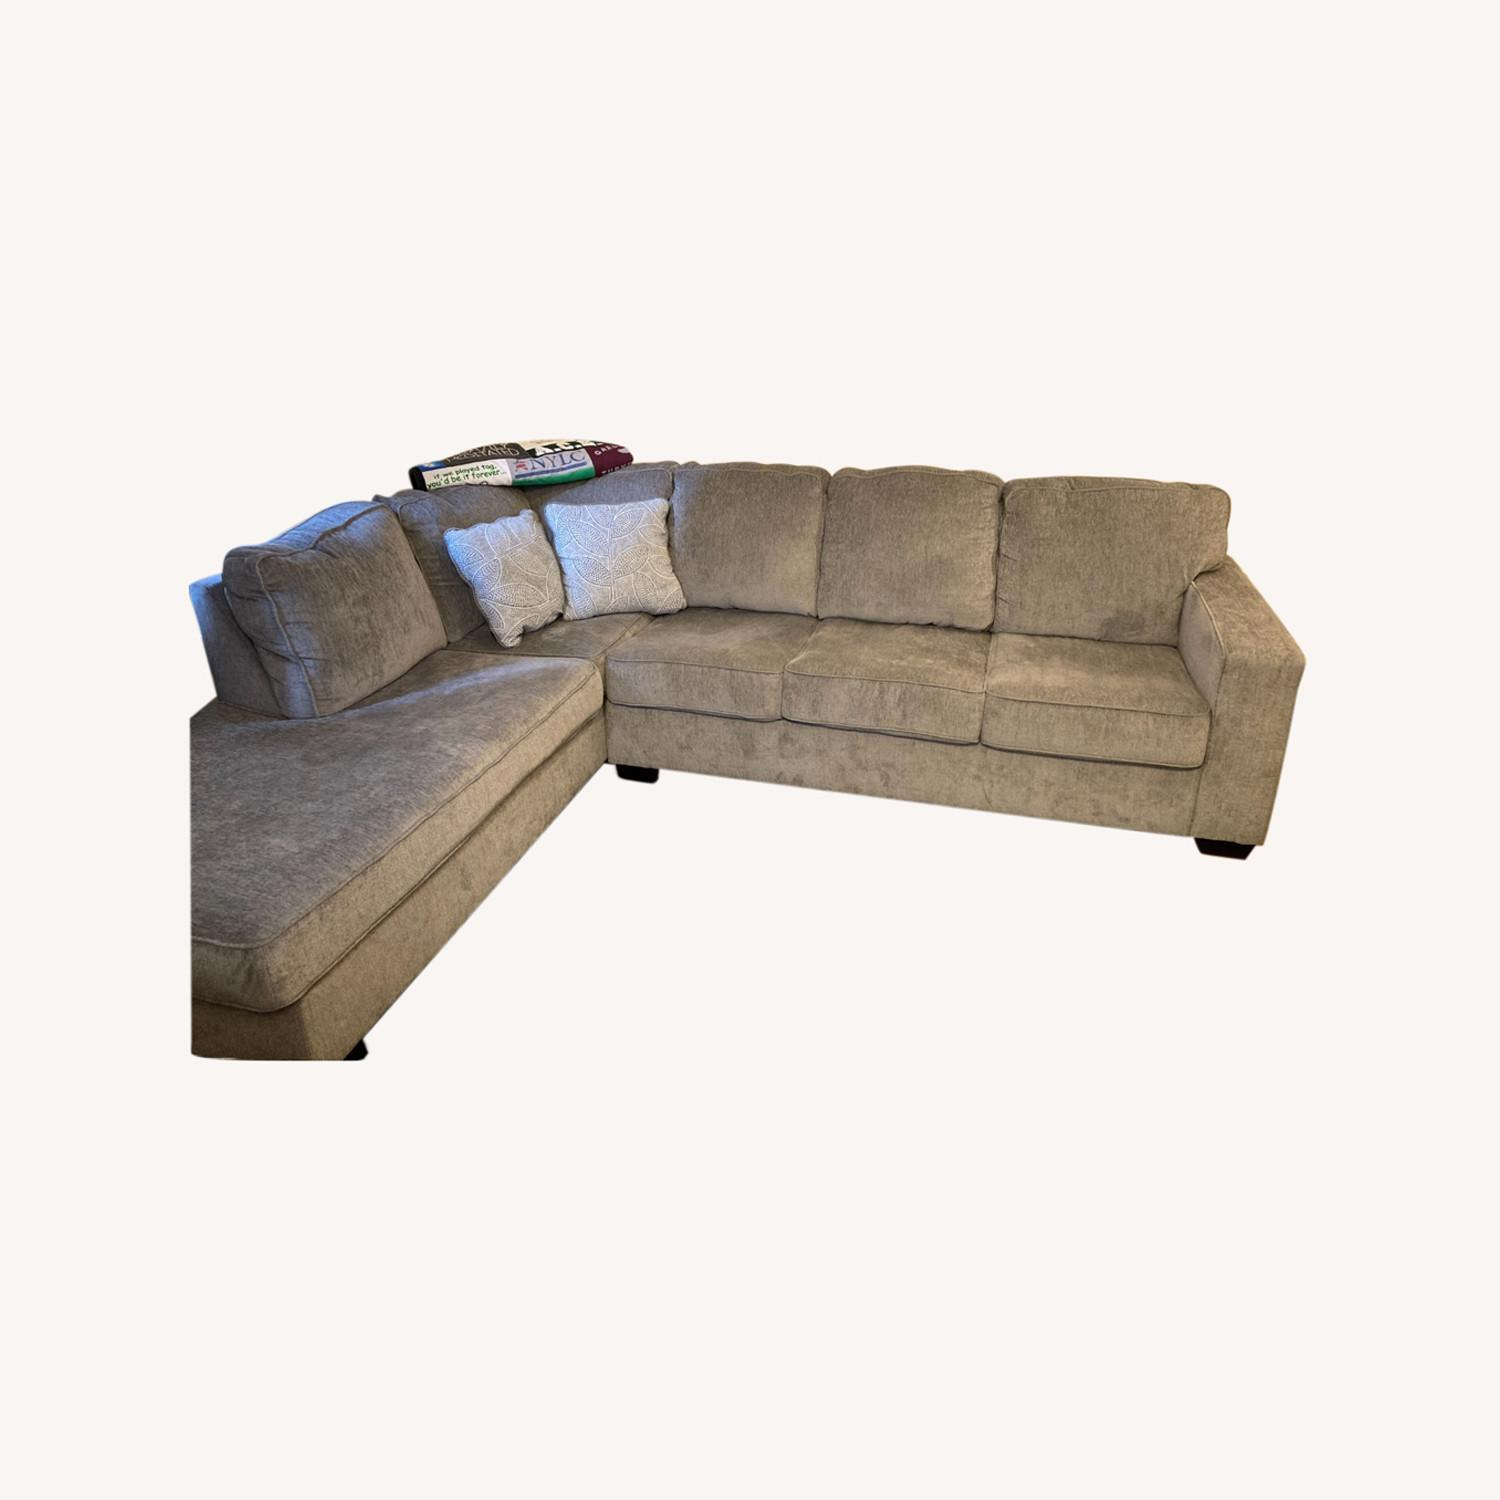 Ashley Furniture Altari 2-Piece Sectional with Chaise - image-0